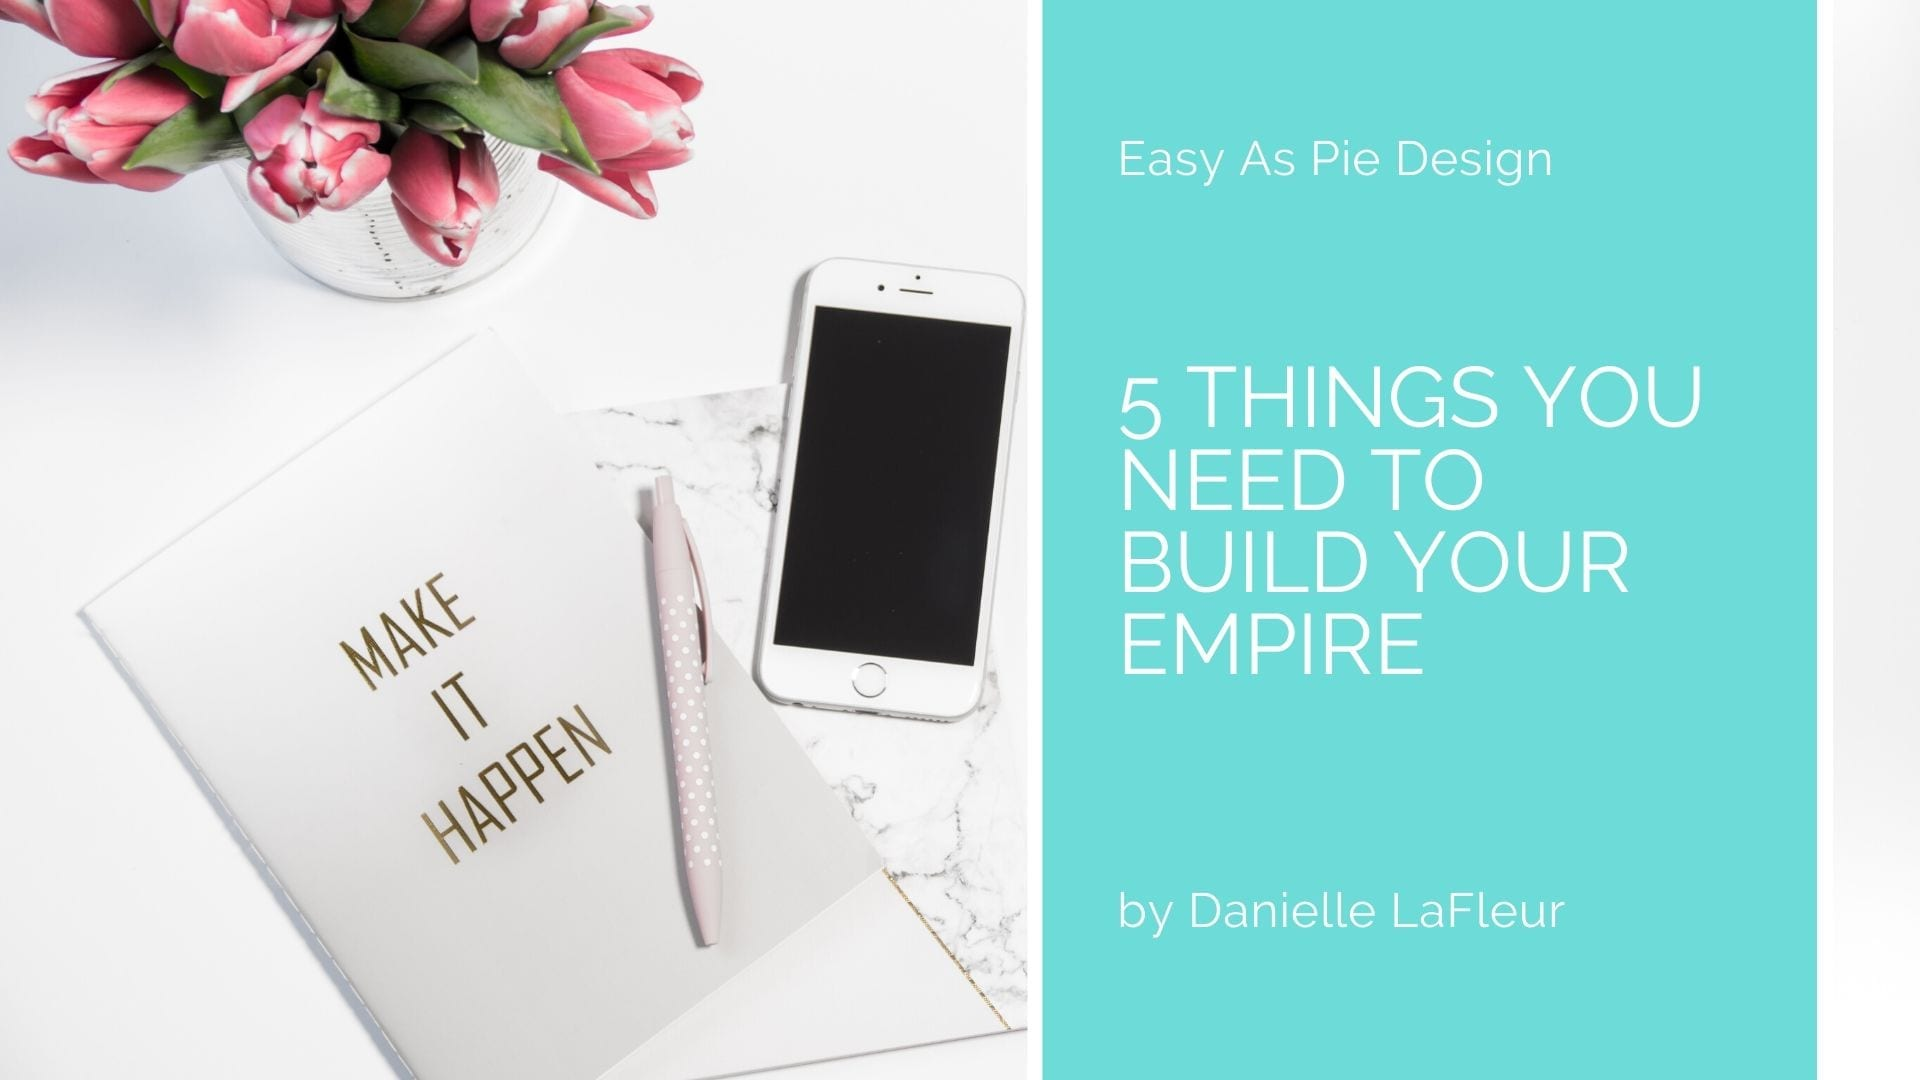 5 Things You Need to Build Your Empire